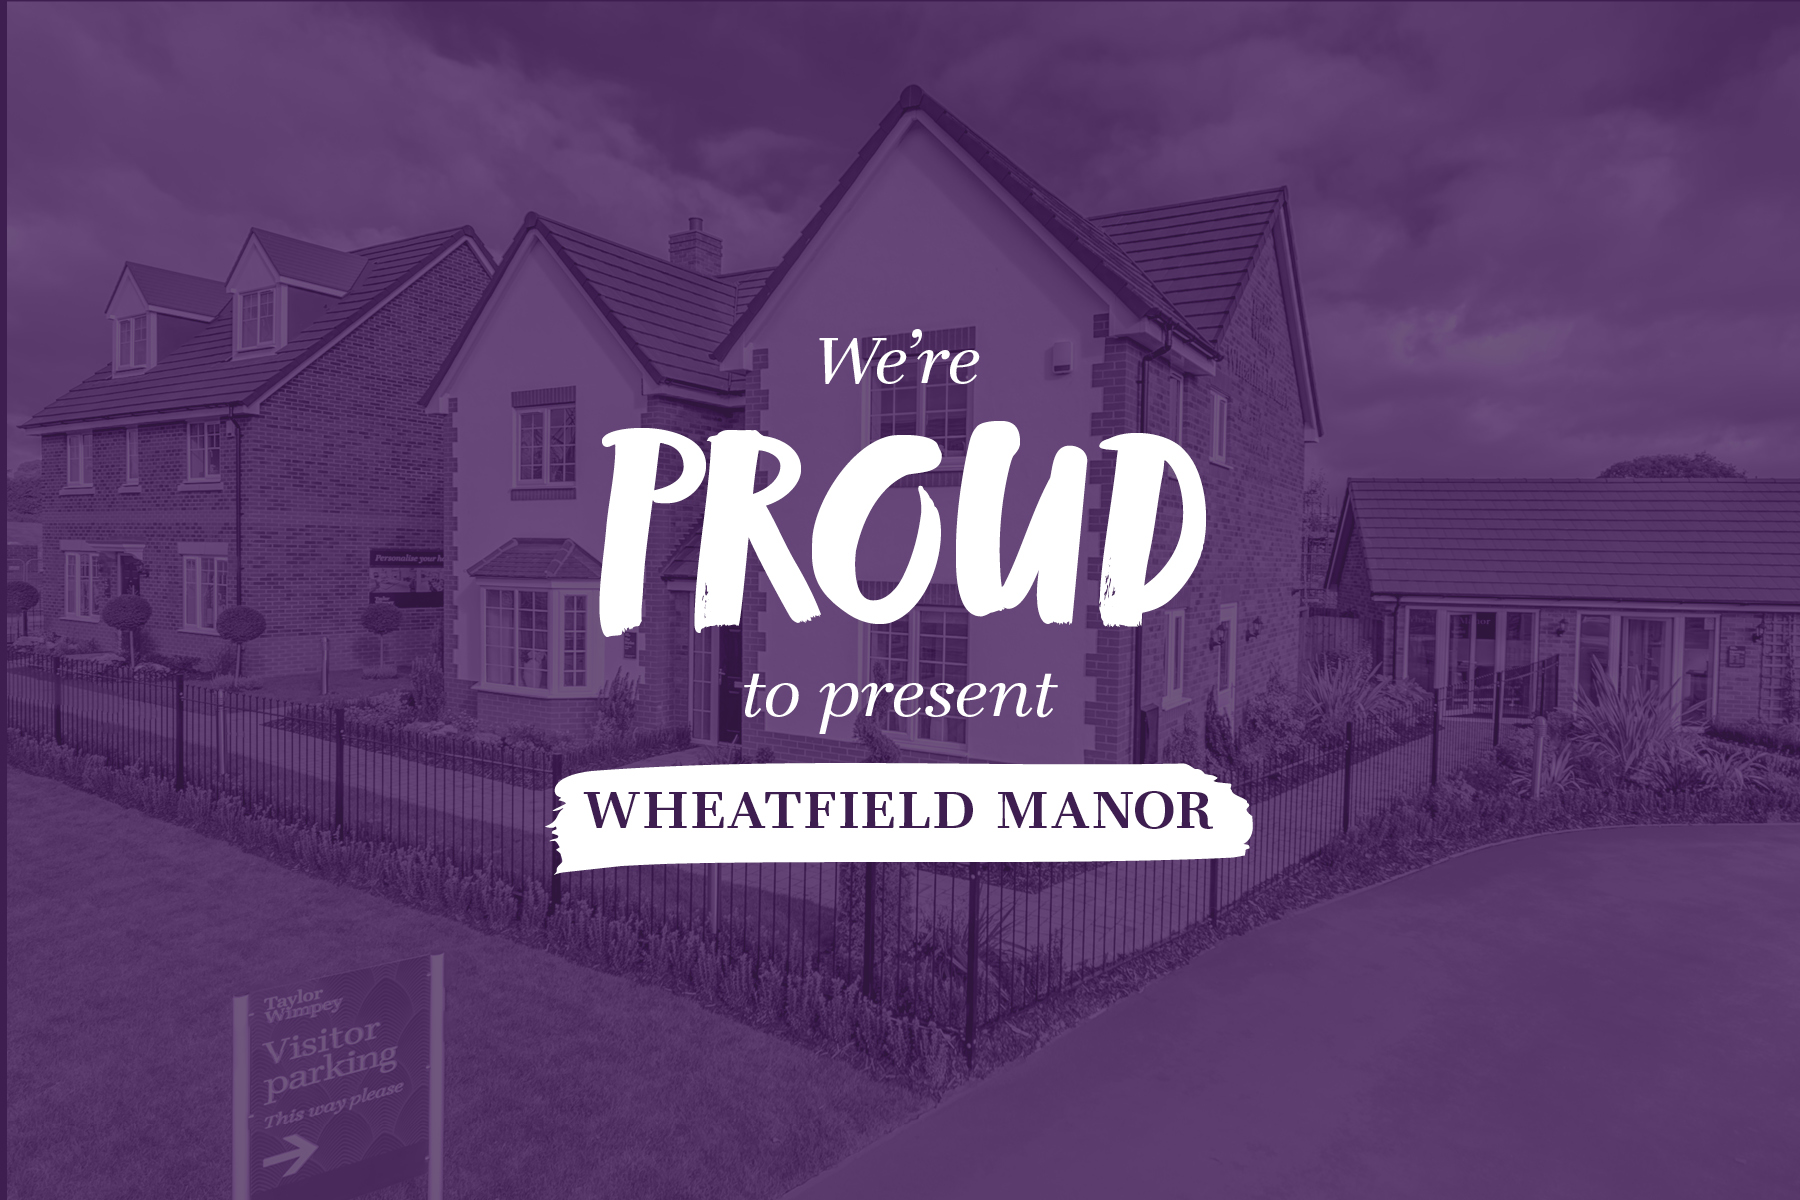 50388_TWM - Proud carousel graphics_1800x1200px_Wheatfield-Manor